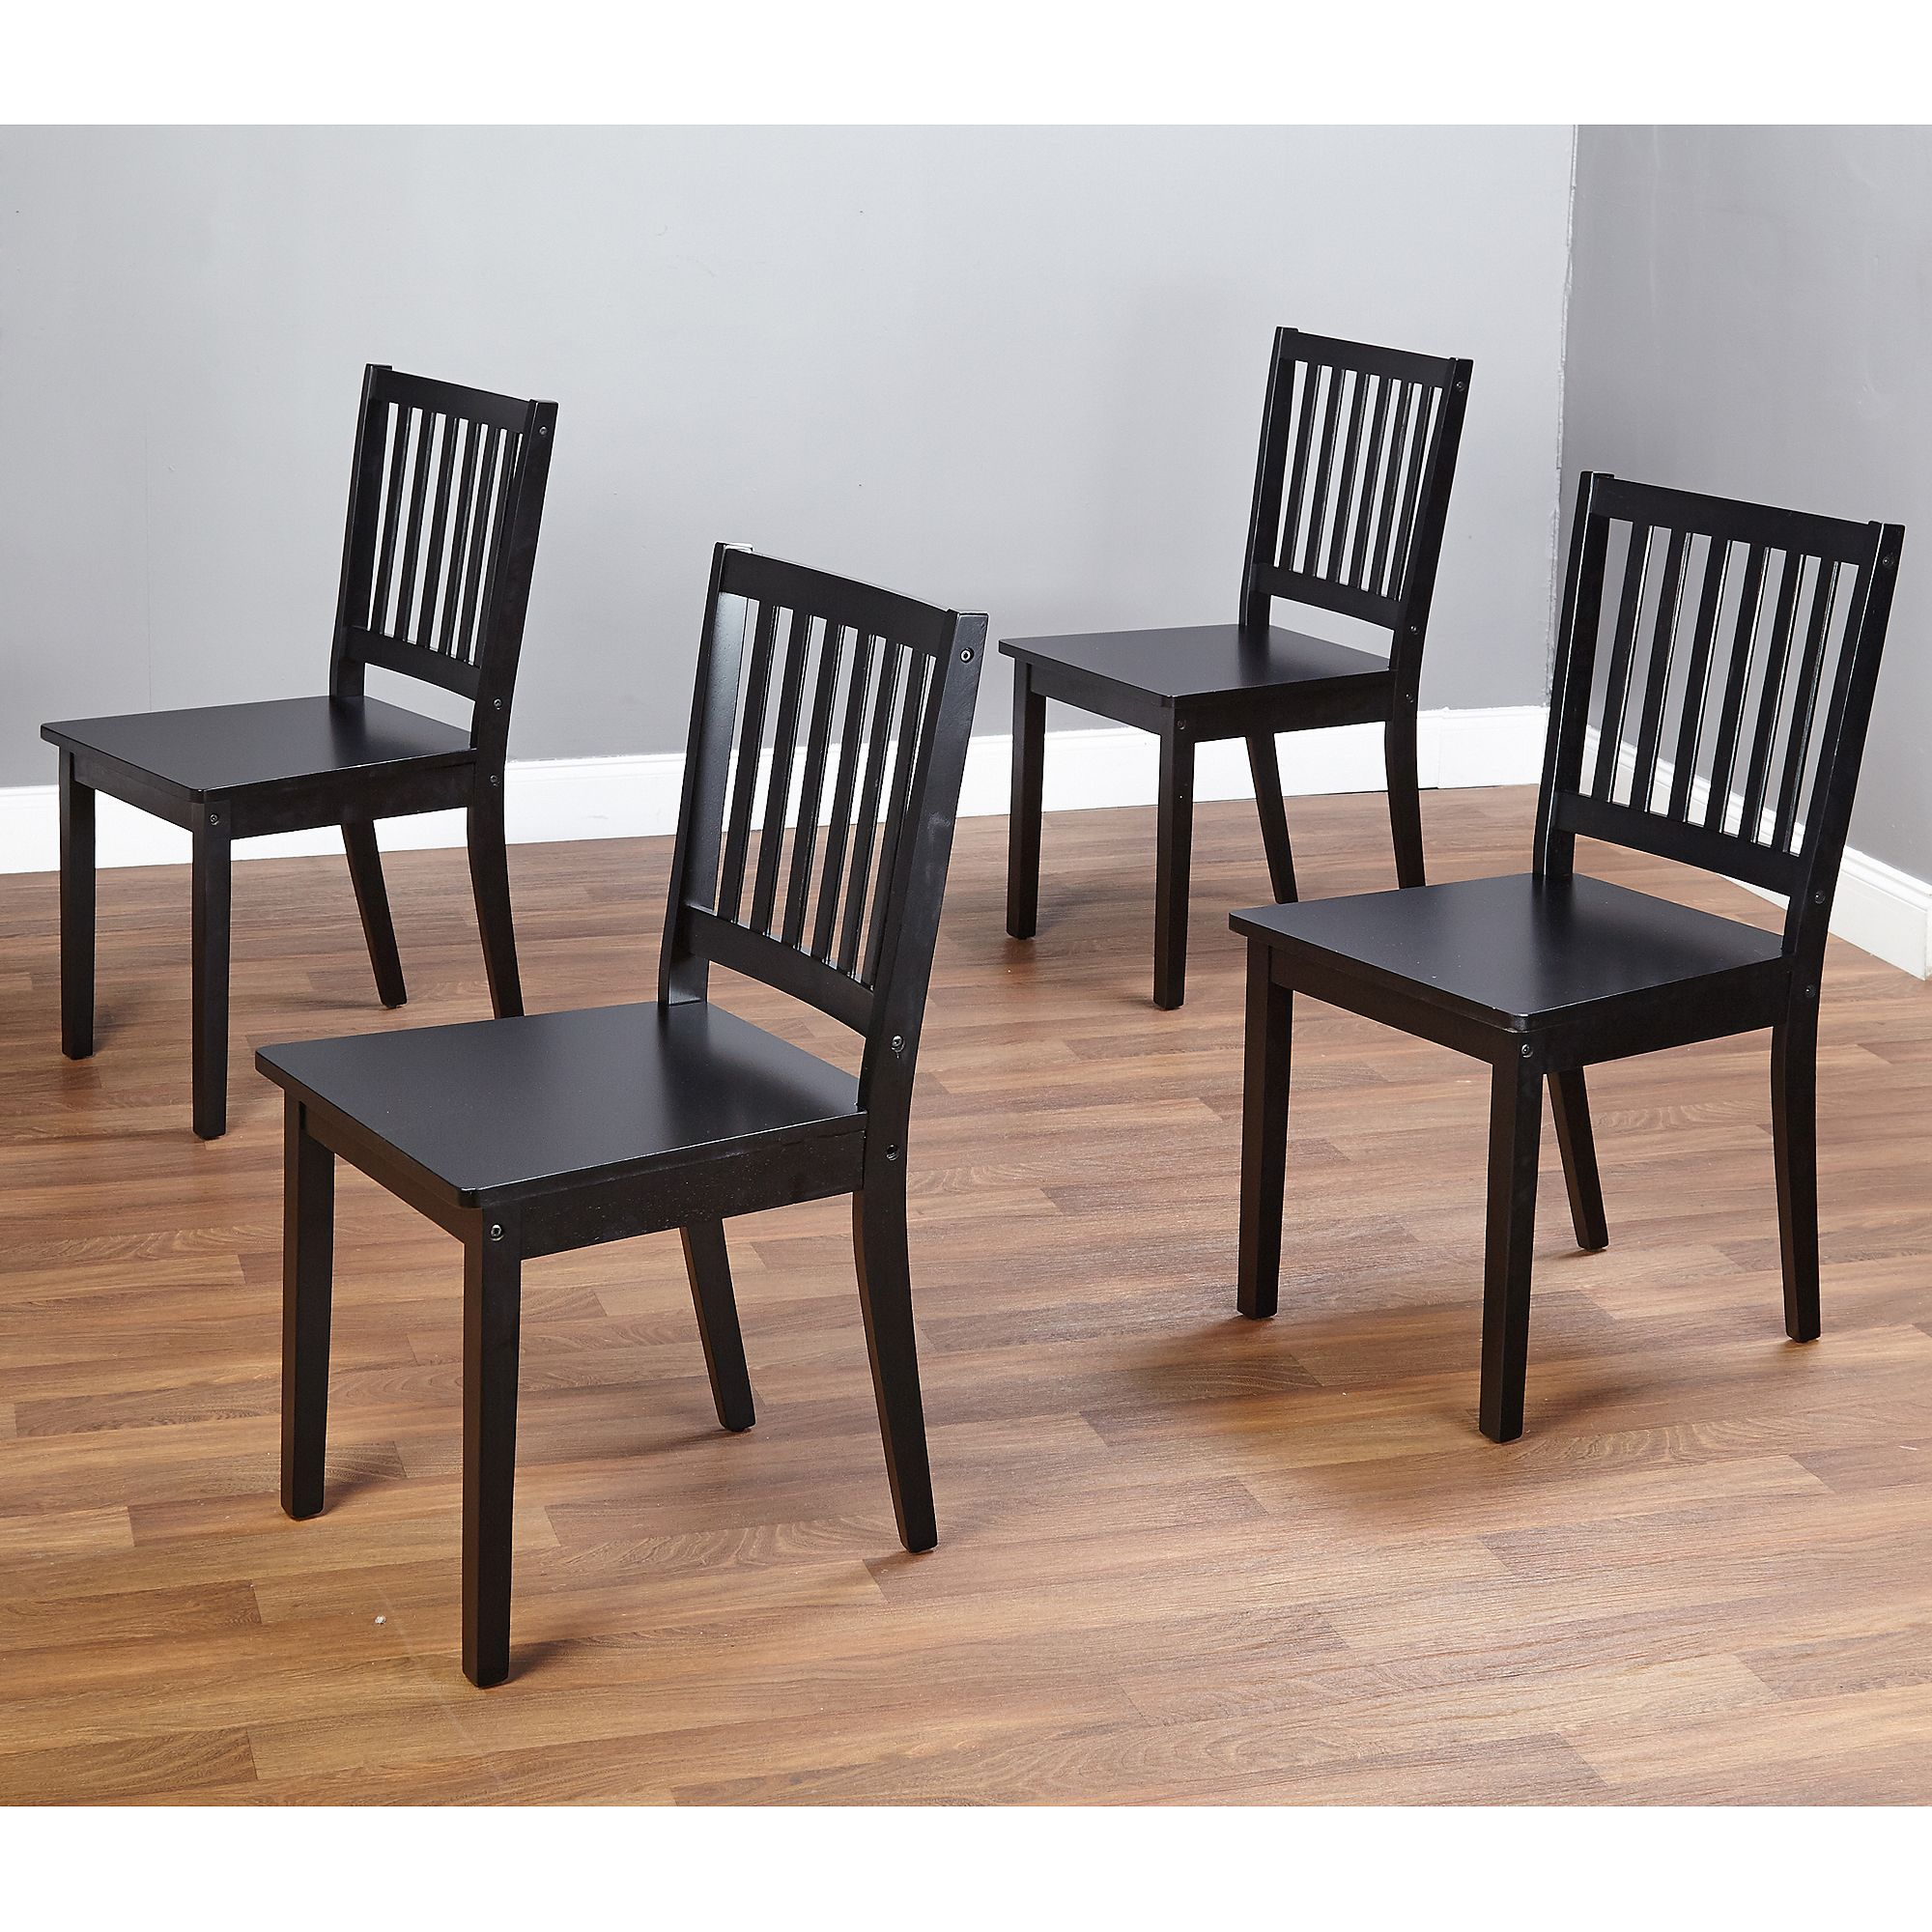 Kitchen Chairs Set Of 4 | Dining Room & Bar Furniture | Pinterest ...